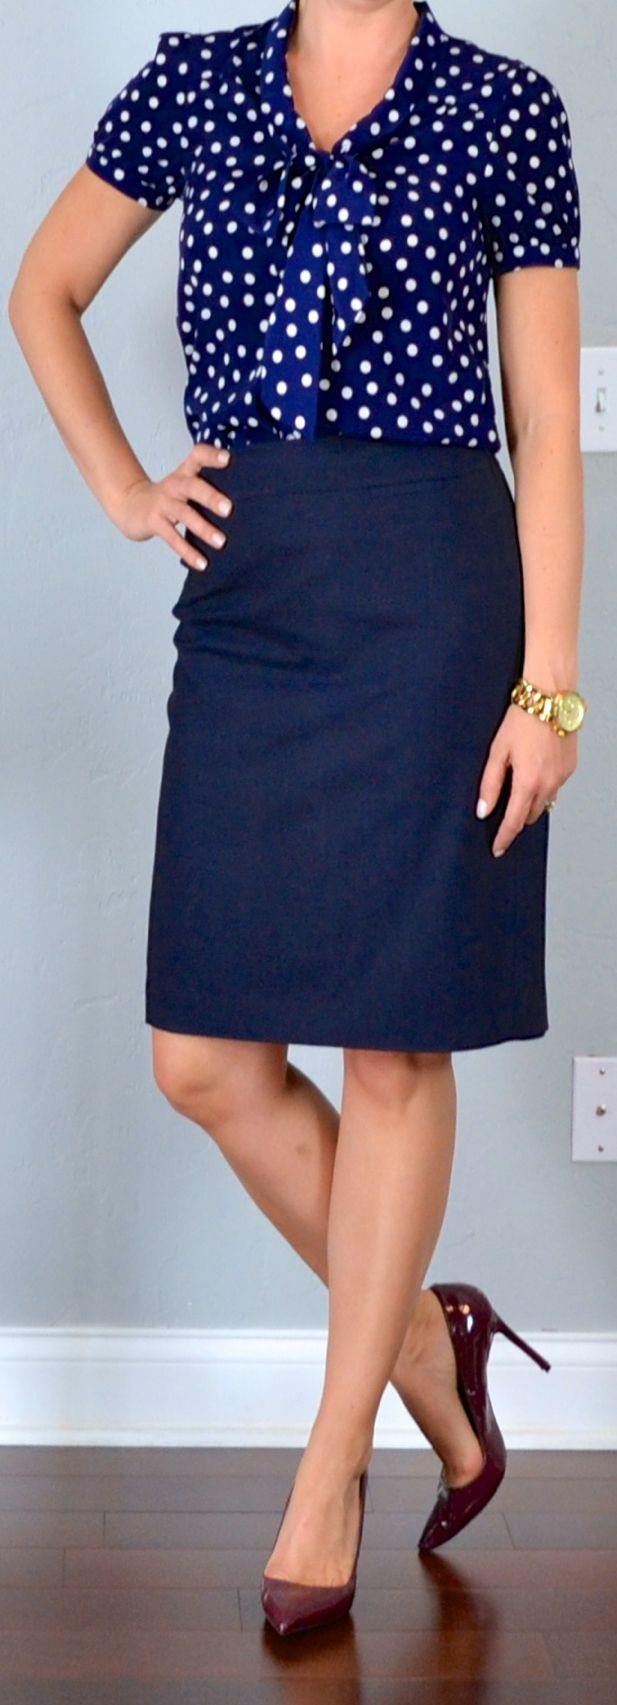 Best 25  Navy pencil skirts ideas on Pinterest | Navy skirt outfit ...